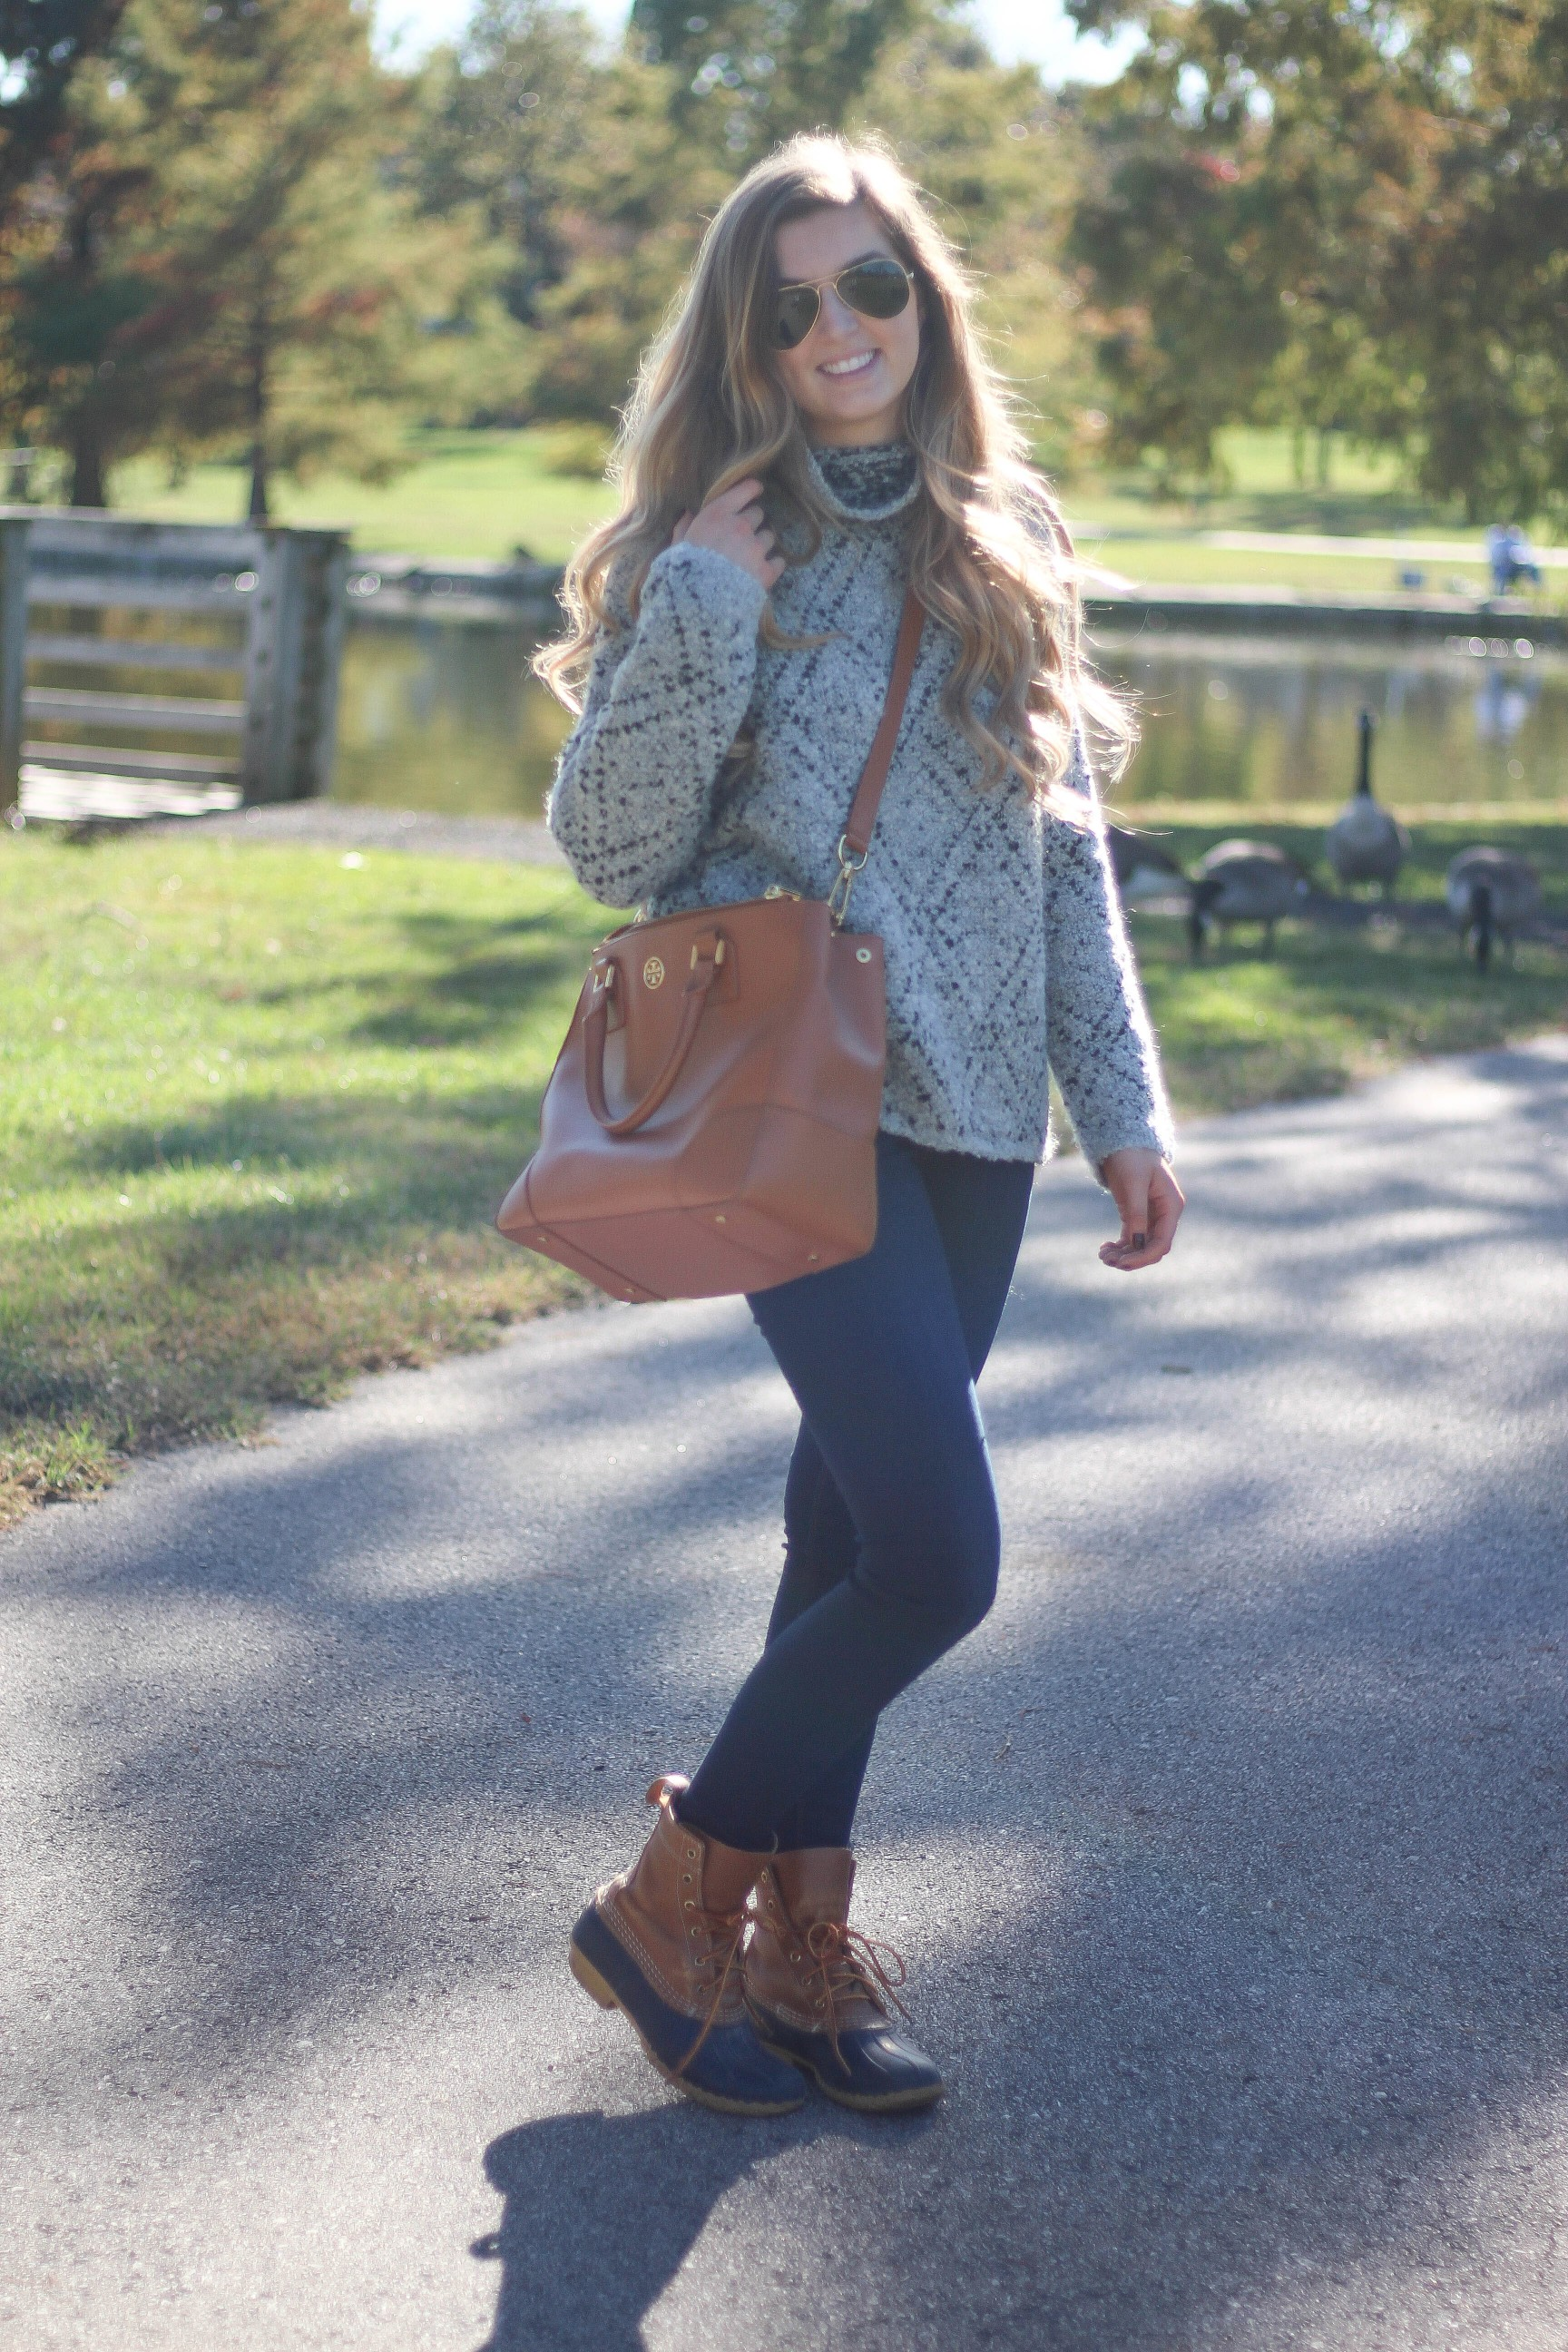 Fall sweater outfit of the day with tory burch tote, ray ban sunglasses, joie sweater, ll bean duck boots, by lauren landmark on daily dose of charm dailydoseofcharm.com (ALL DETAILS ON THE BLOG)